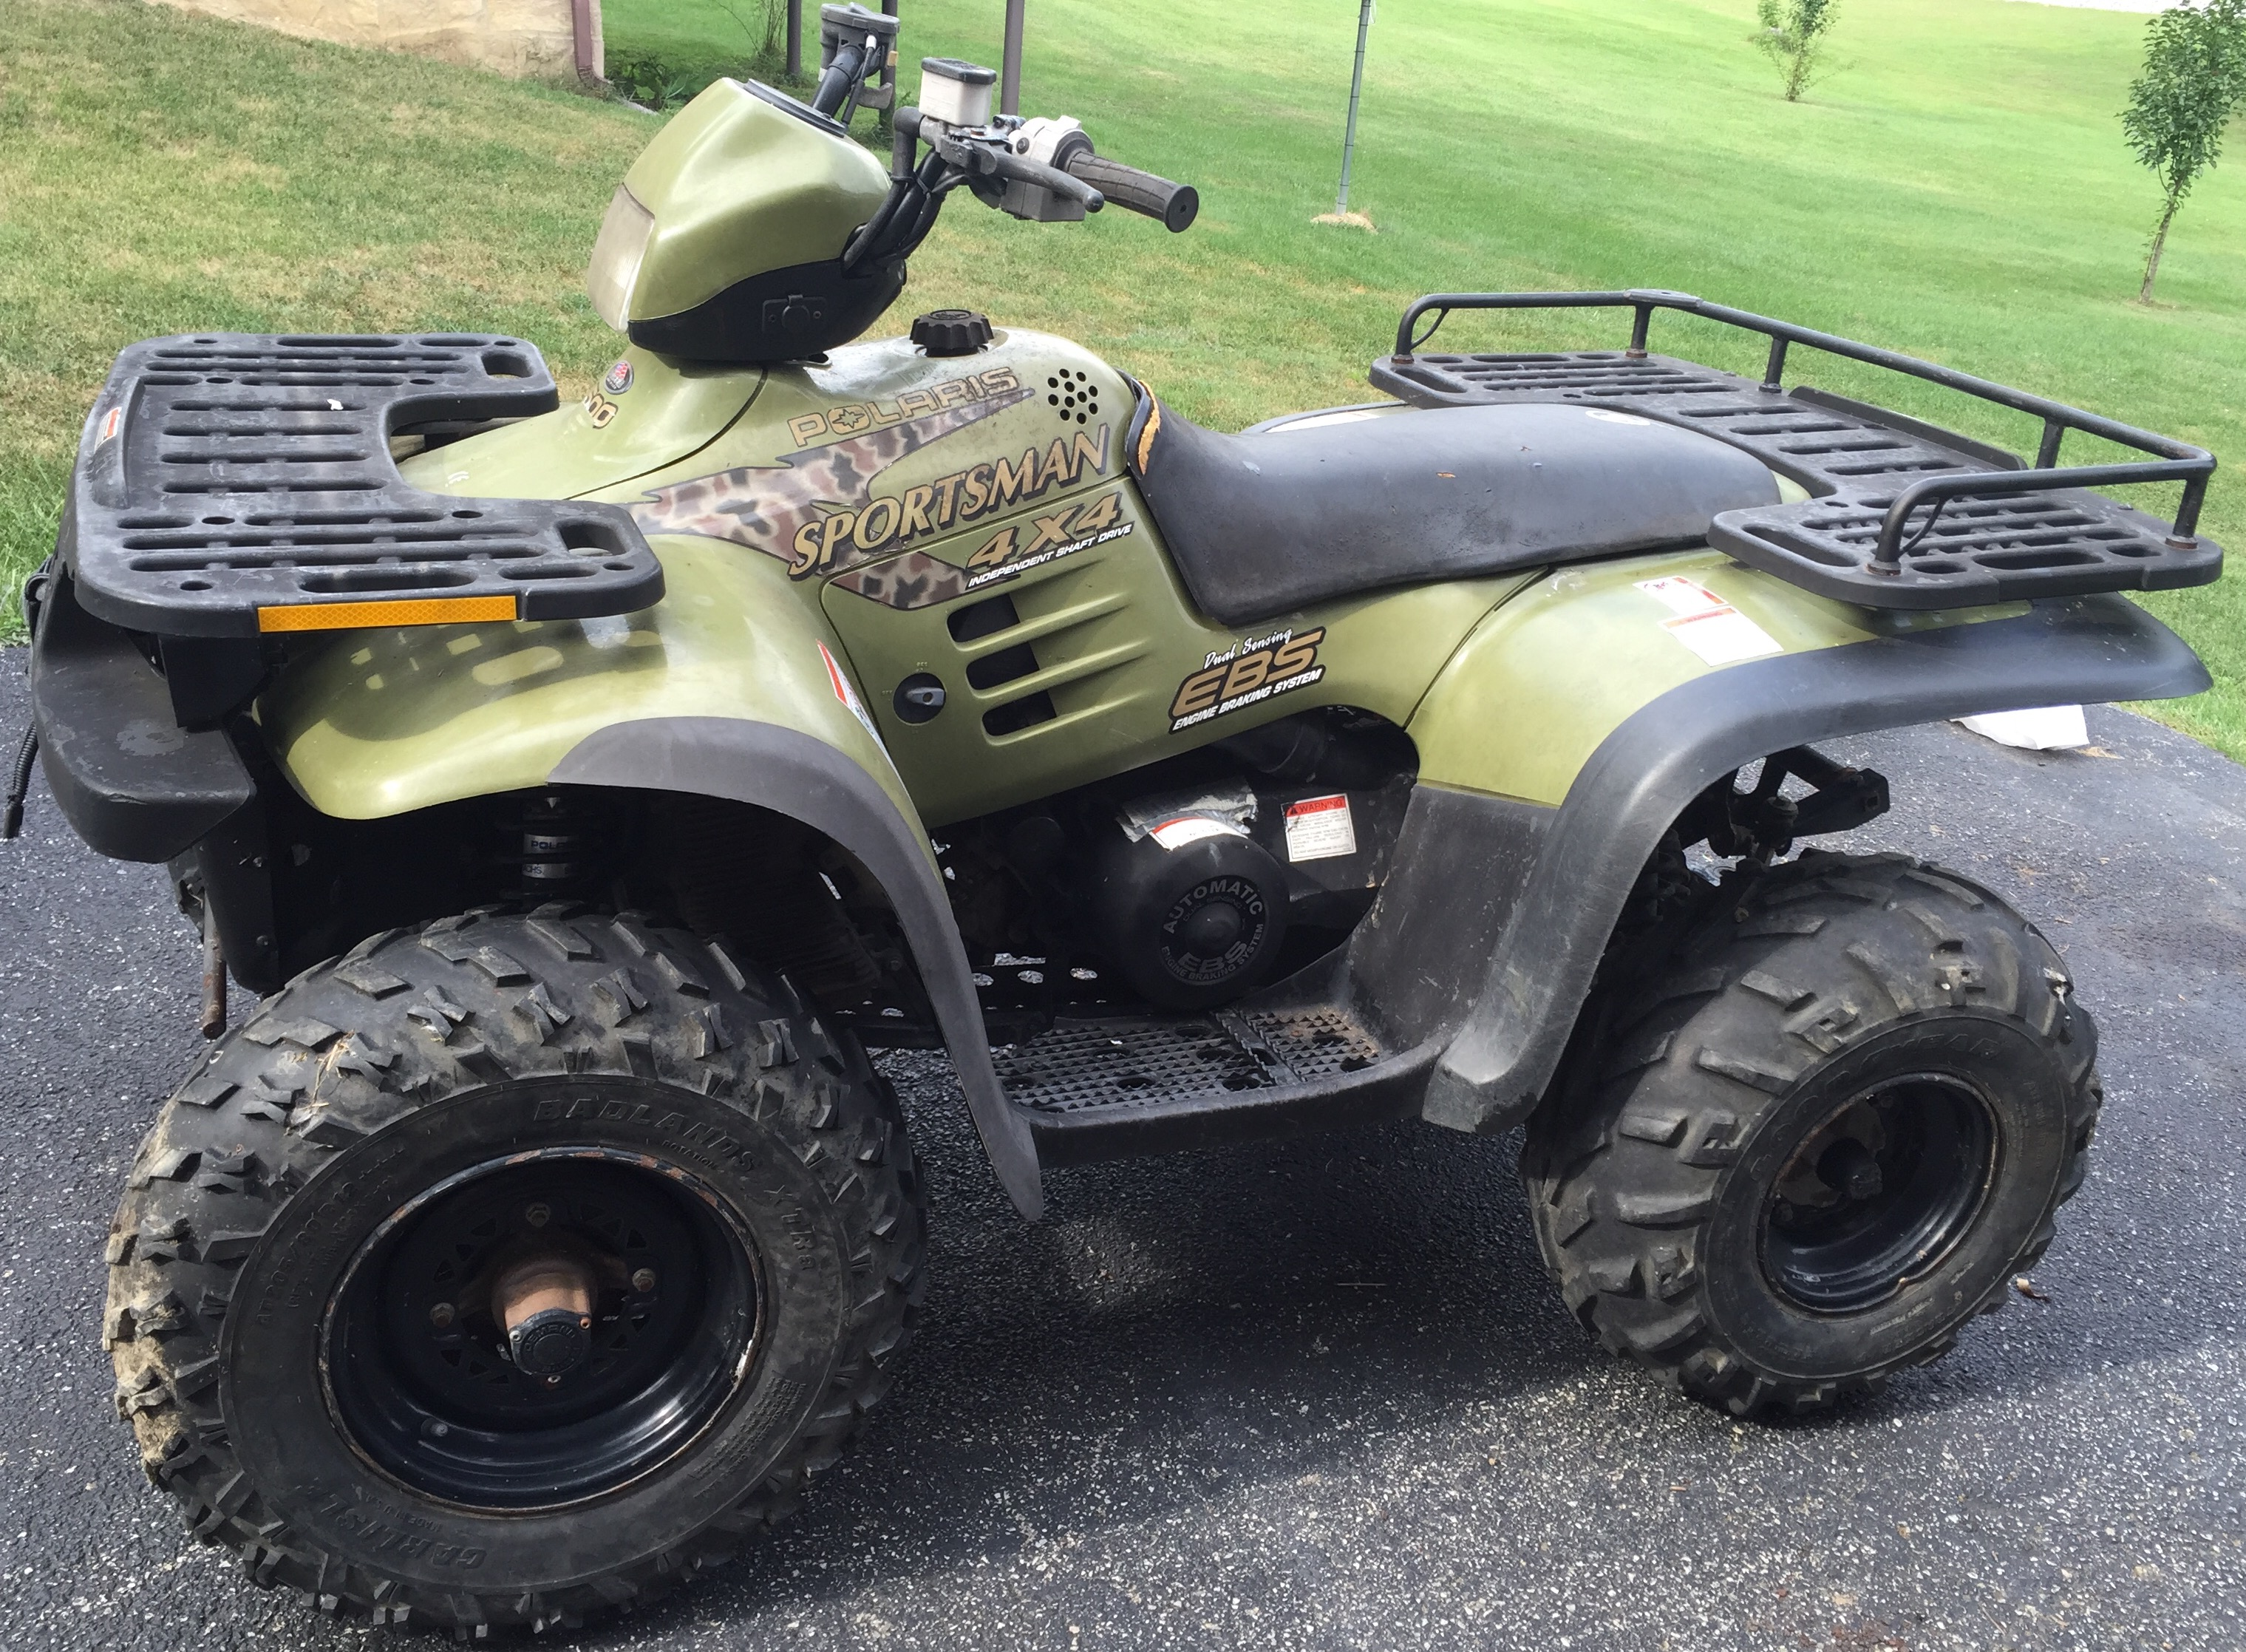 1996 polaris sportsman 500 h o pics specs and. Black Bedroom Furniture Sets. Home Design Ideas